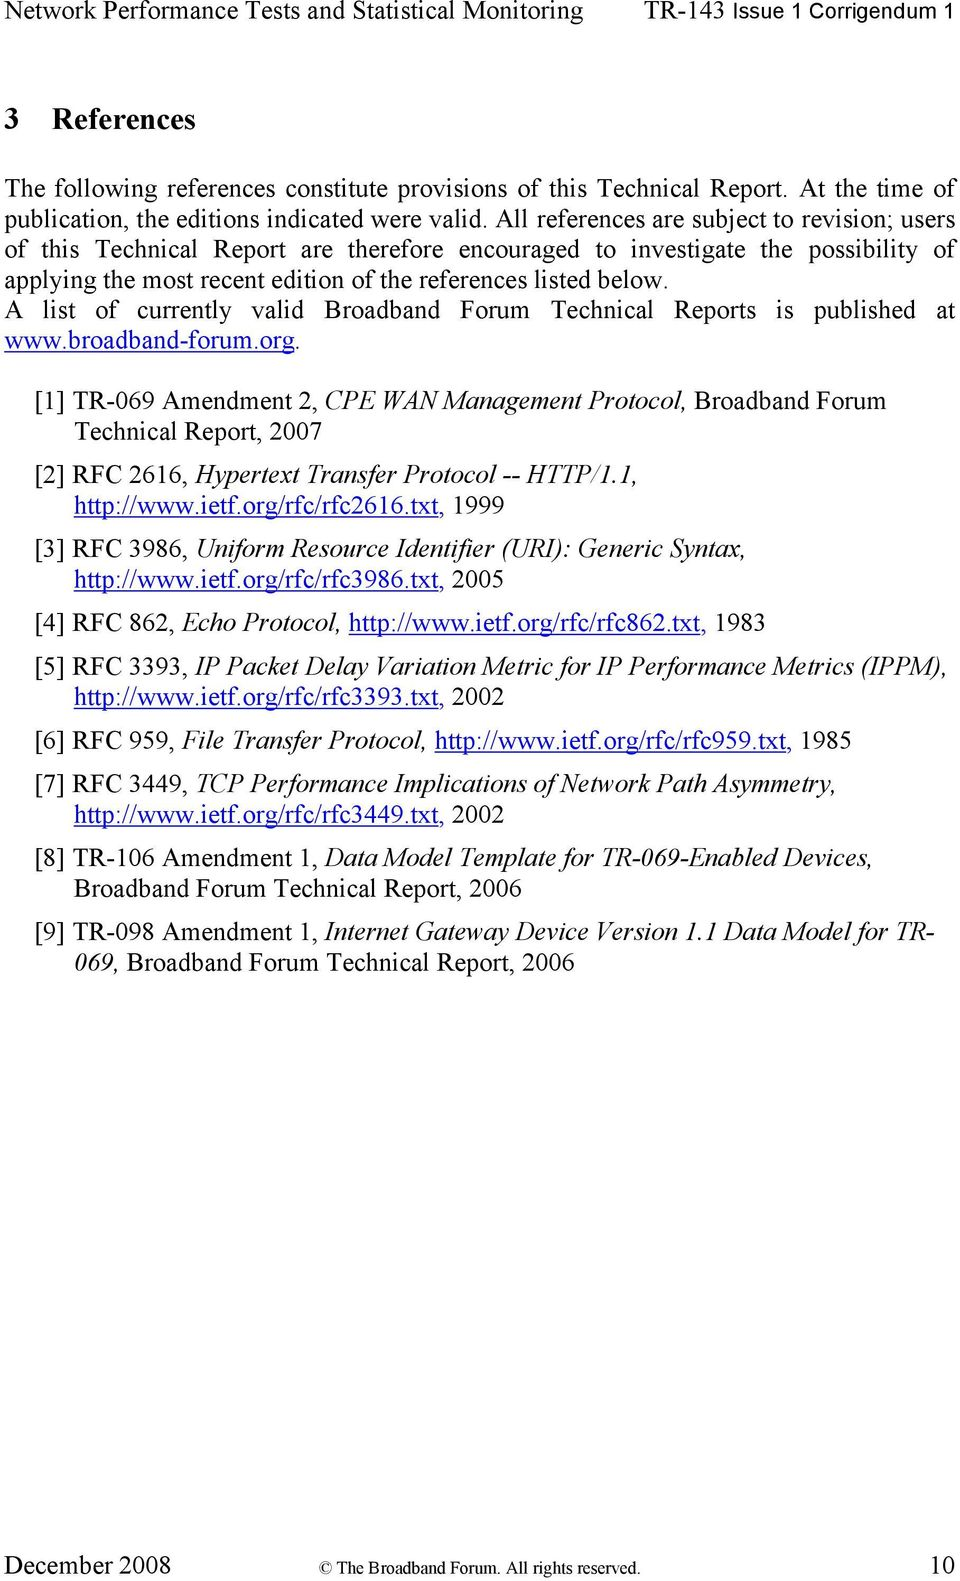 A list of currently valid Broadband Forum Technical Reports is published at www.broadbandforum.org.